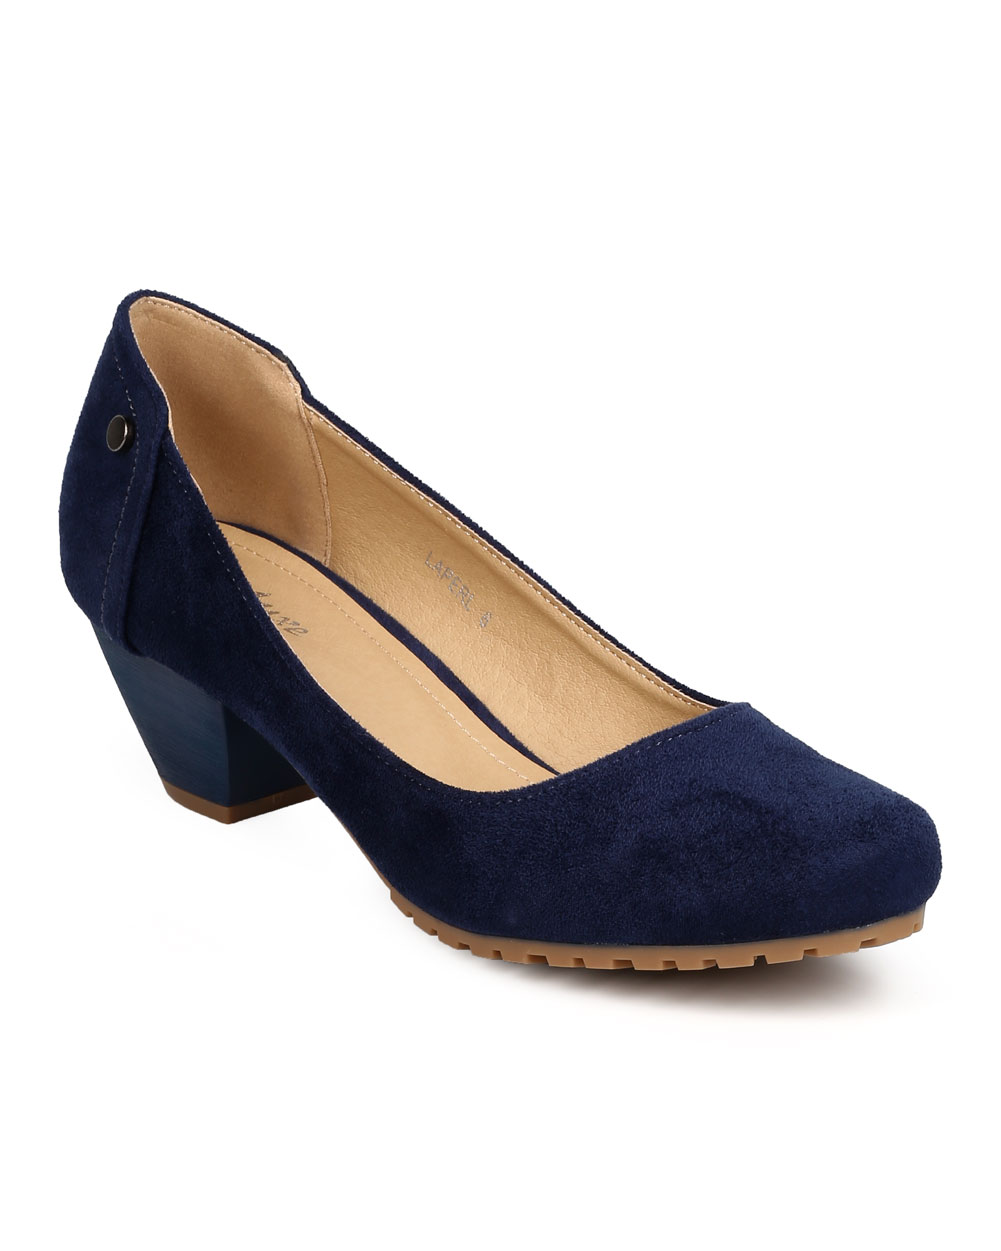 New Women Styluxe Laperl Faux Suede Round Toe Lug Sole Chunky Heel Pump